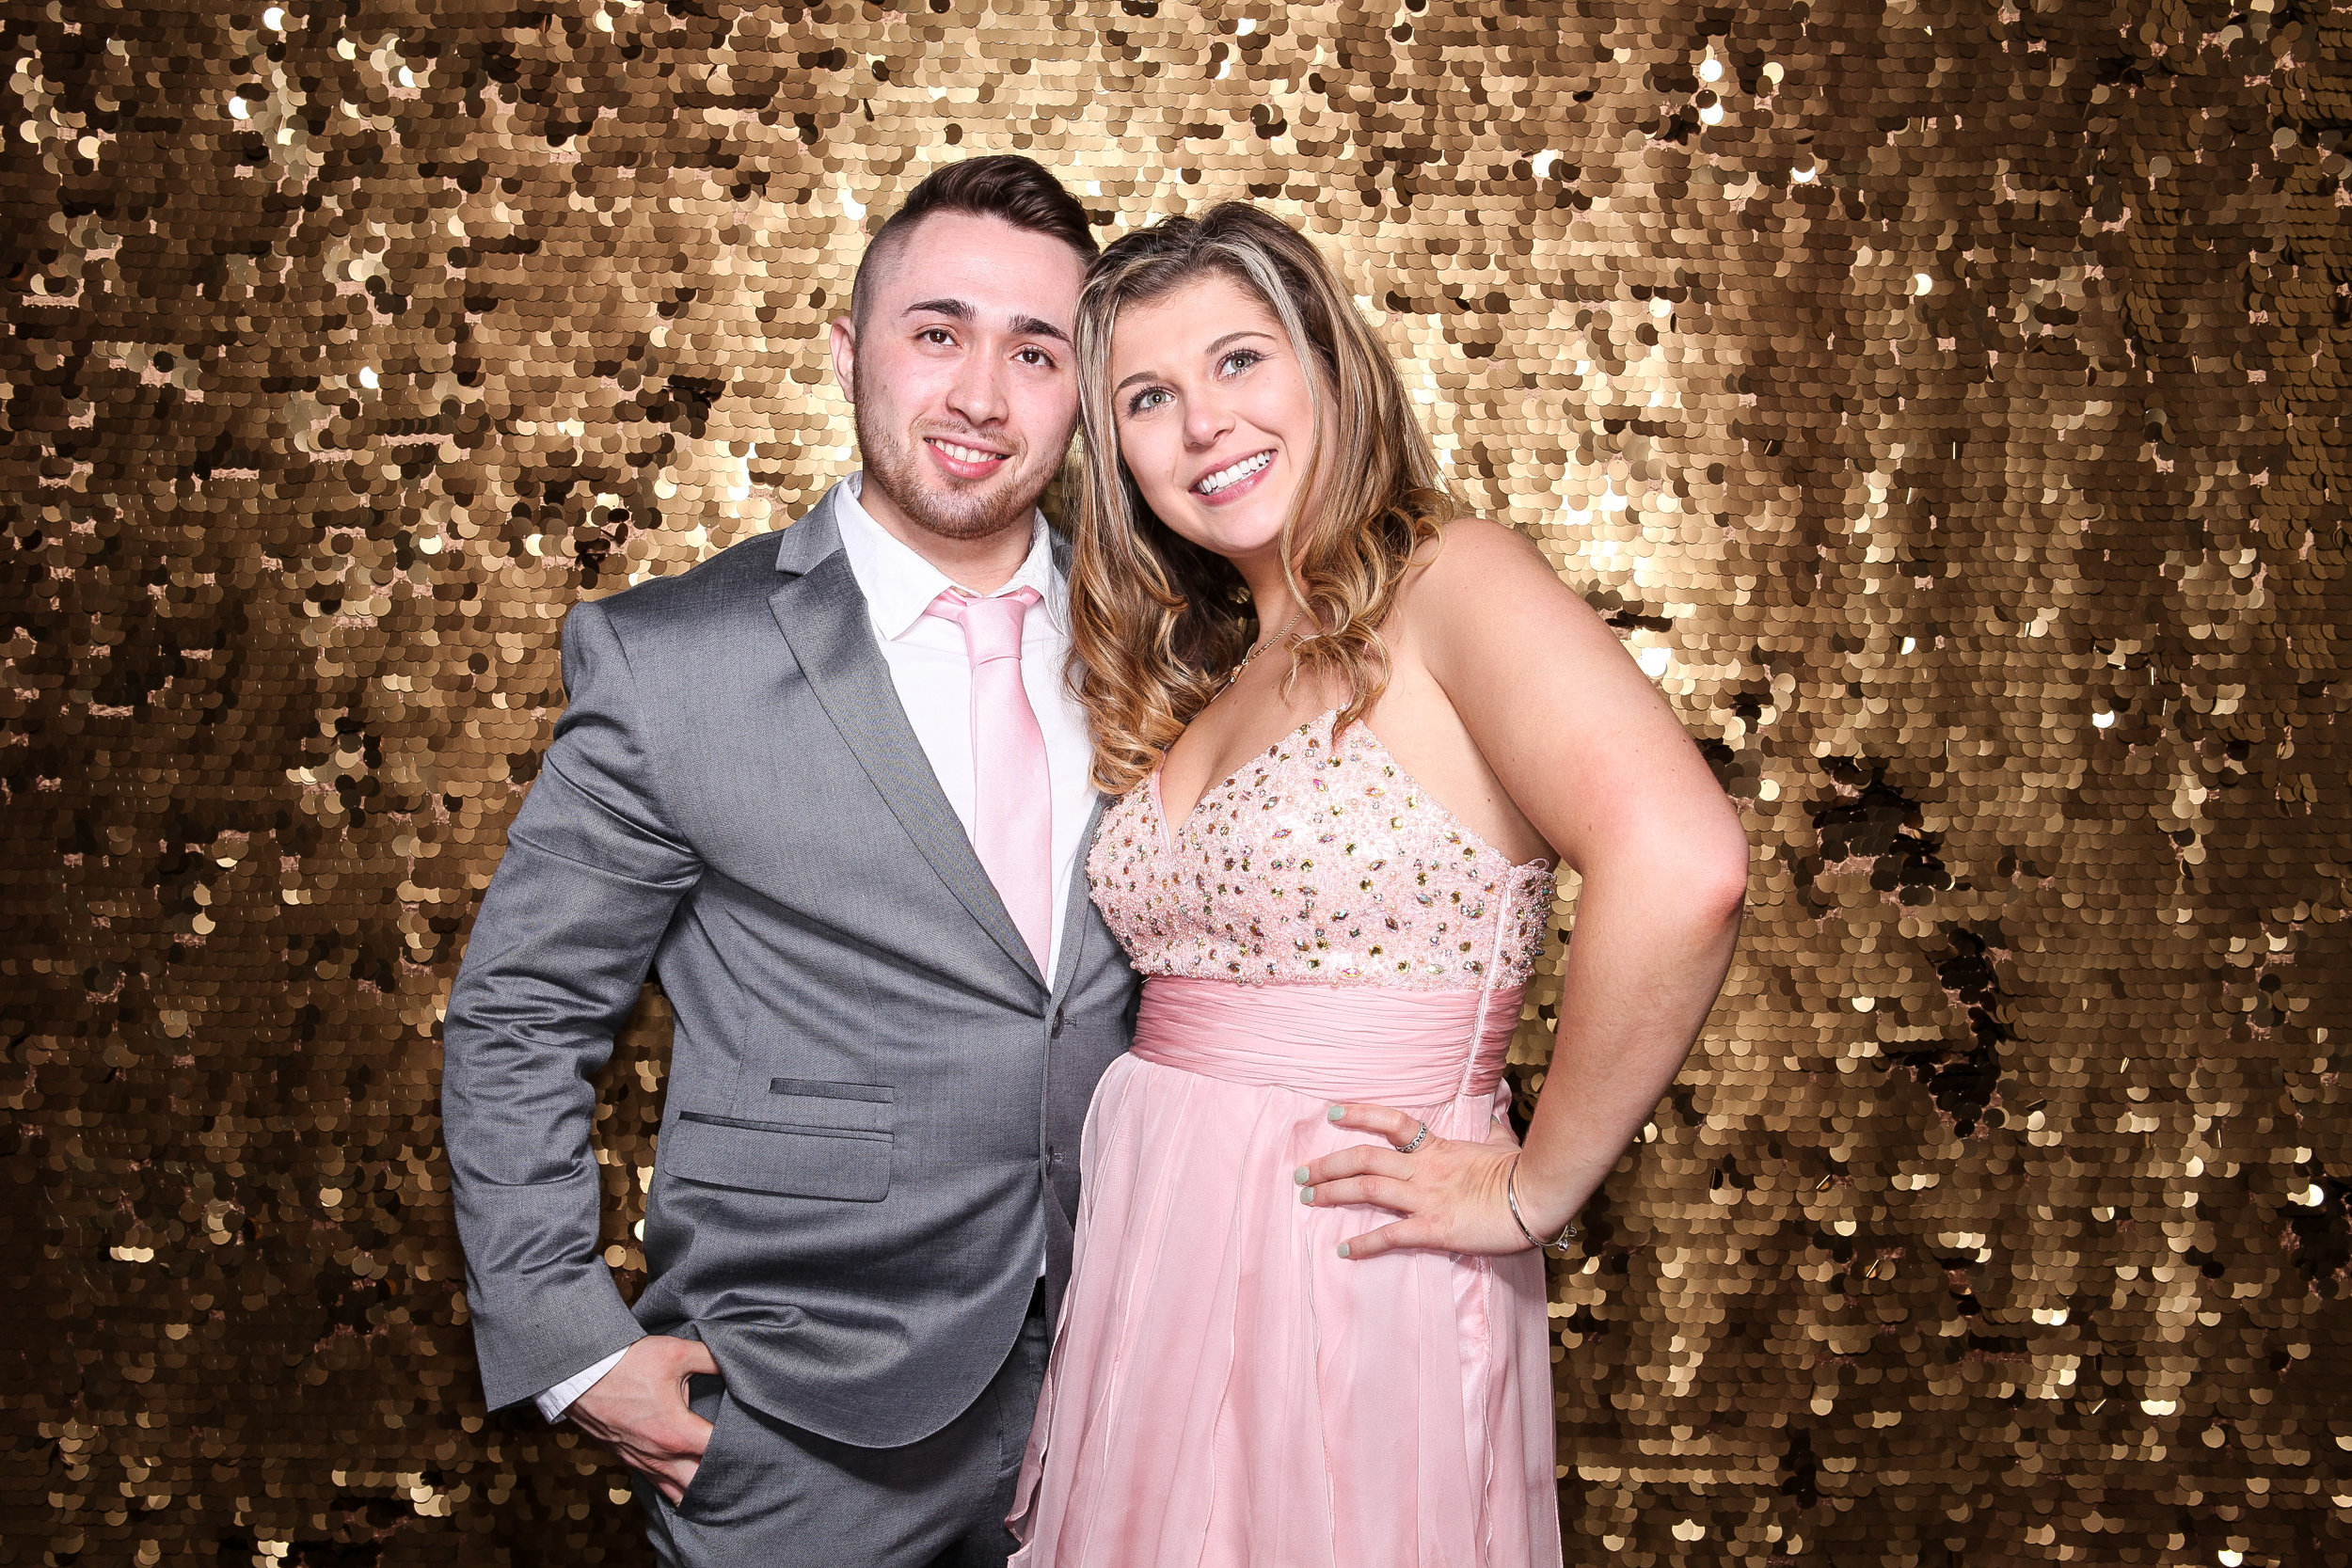 20190503_Adelphi_Senior_Formal-315.jpg